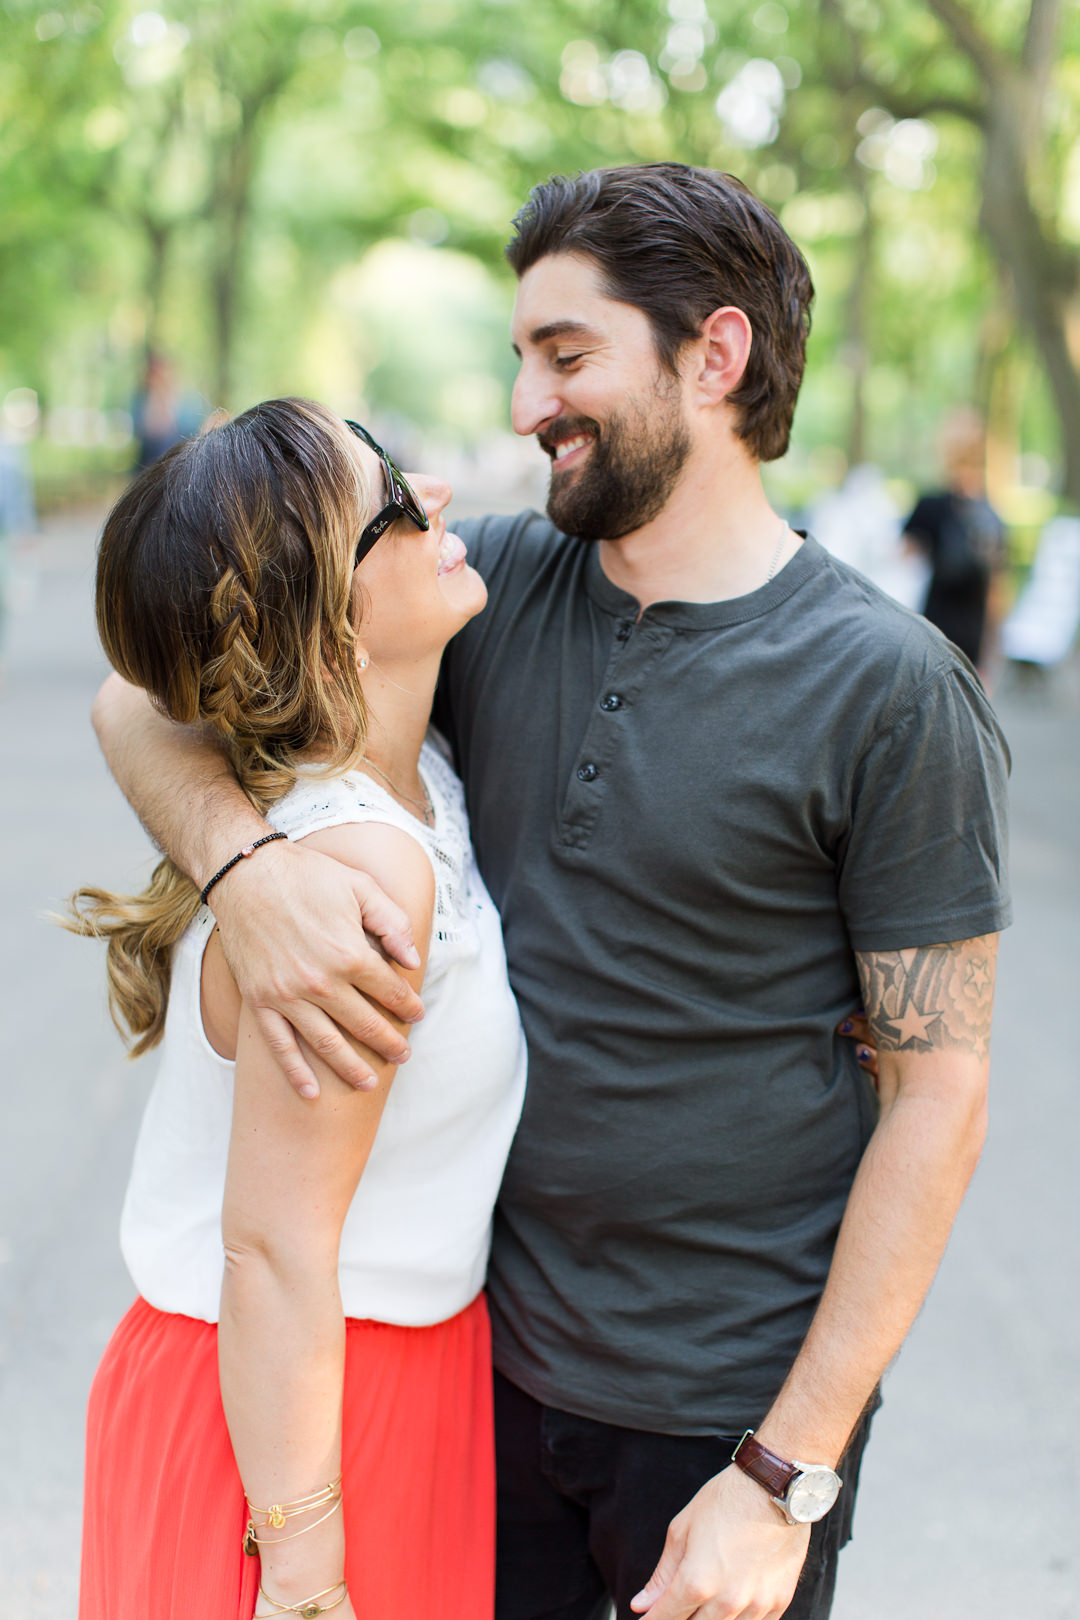 Melissa Kruse Photography - Eileen & Kenny Engagement Photos-118.jpg